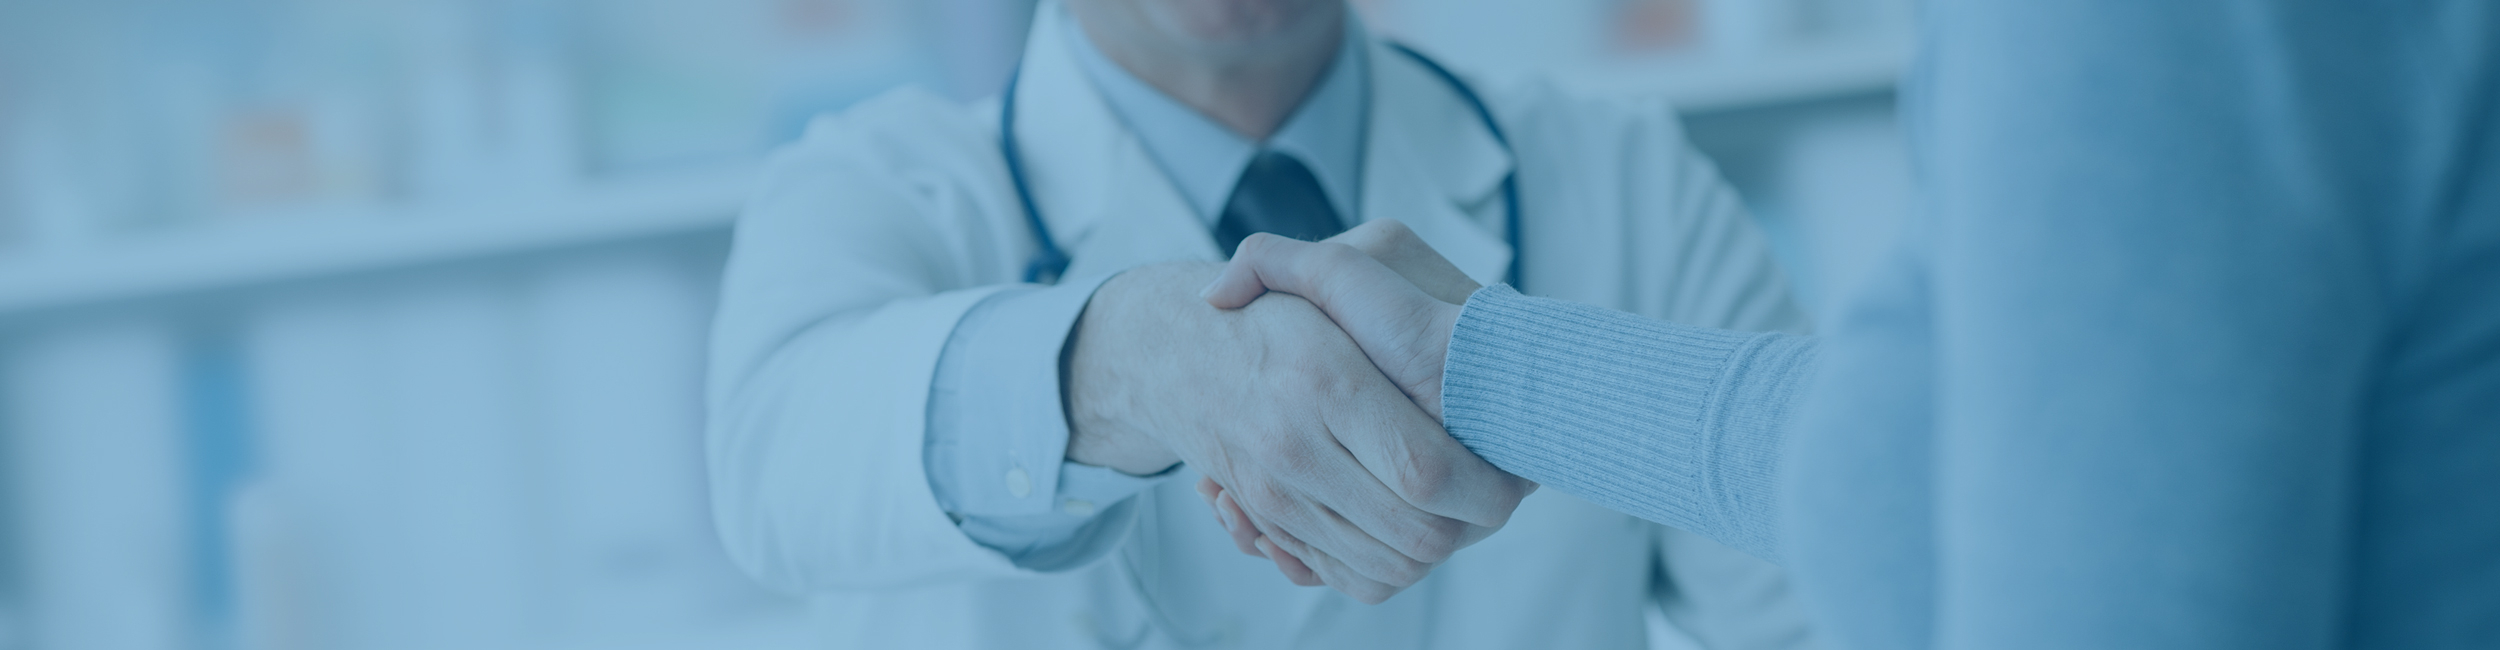 NPA Return to Work Services Doctor and Patient